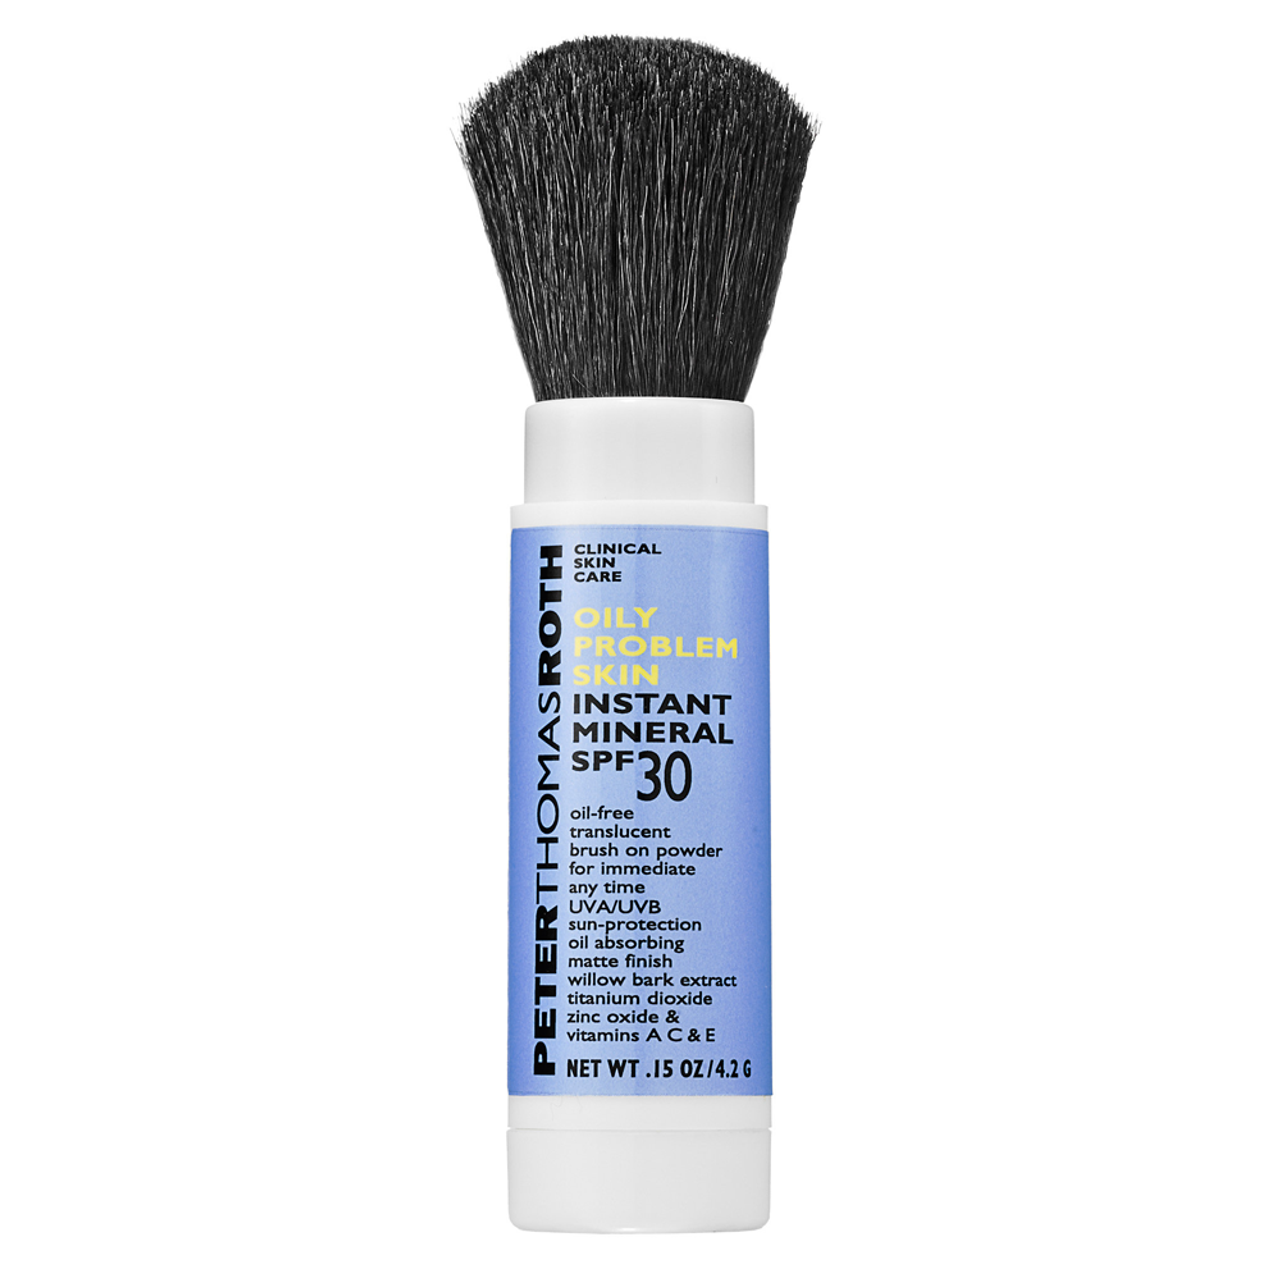 Peter Thomas Roth Oily Problem Skin Instant Mineral SPF 30 (discontinued) BeautifiedYou.com